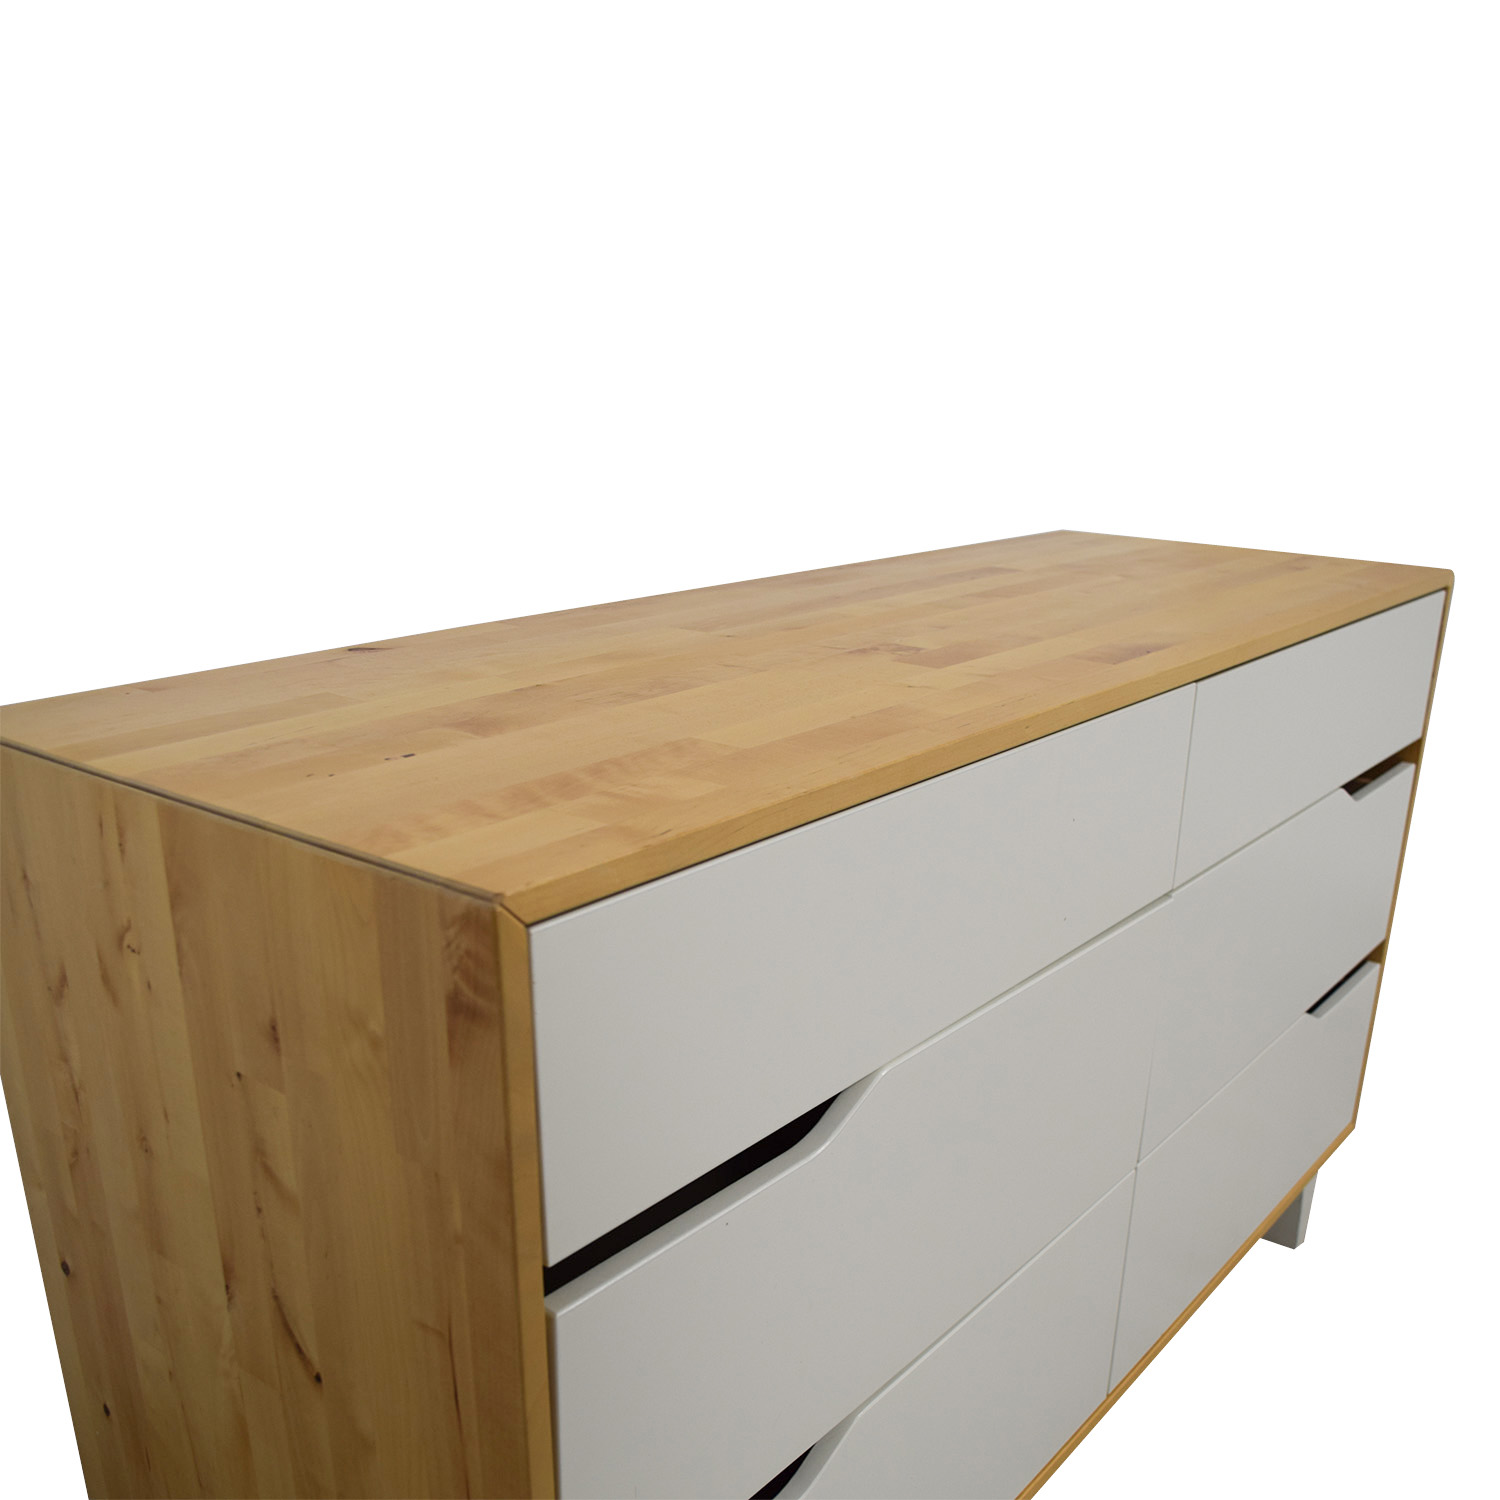 IKEA IKEA Askvoll White And Wood Six-Drawer